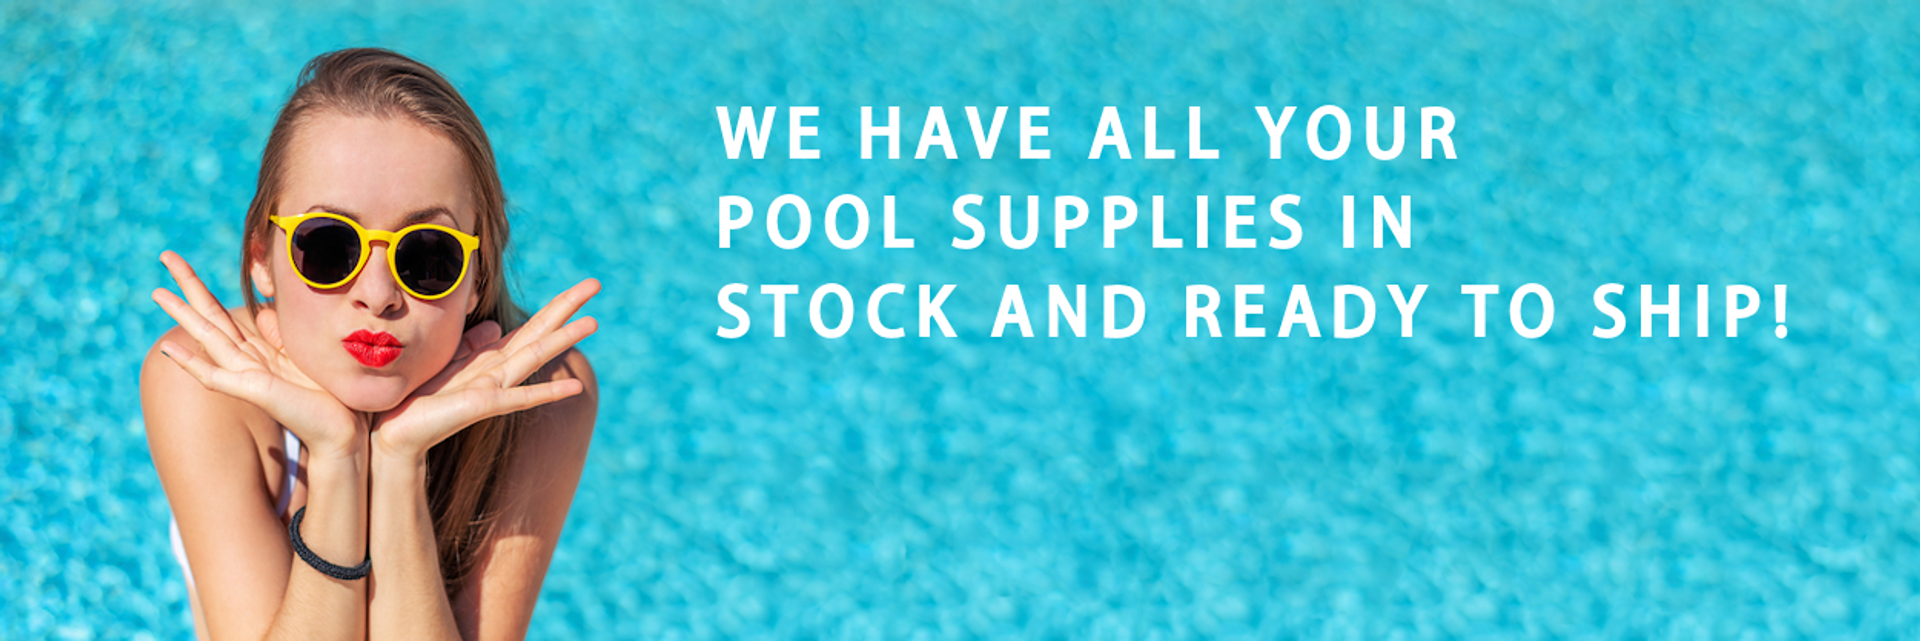 Pool Supplies in Stock